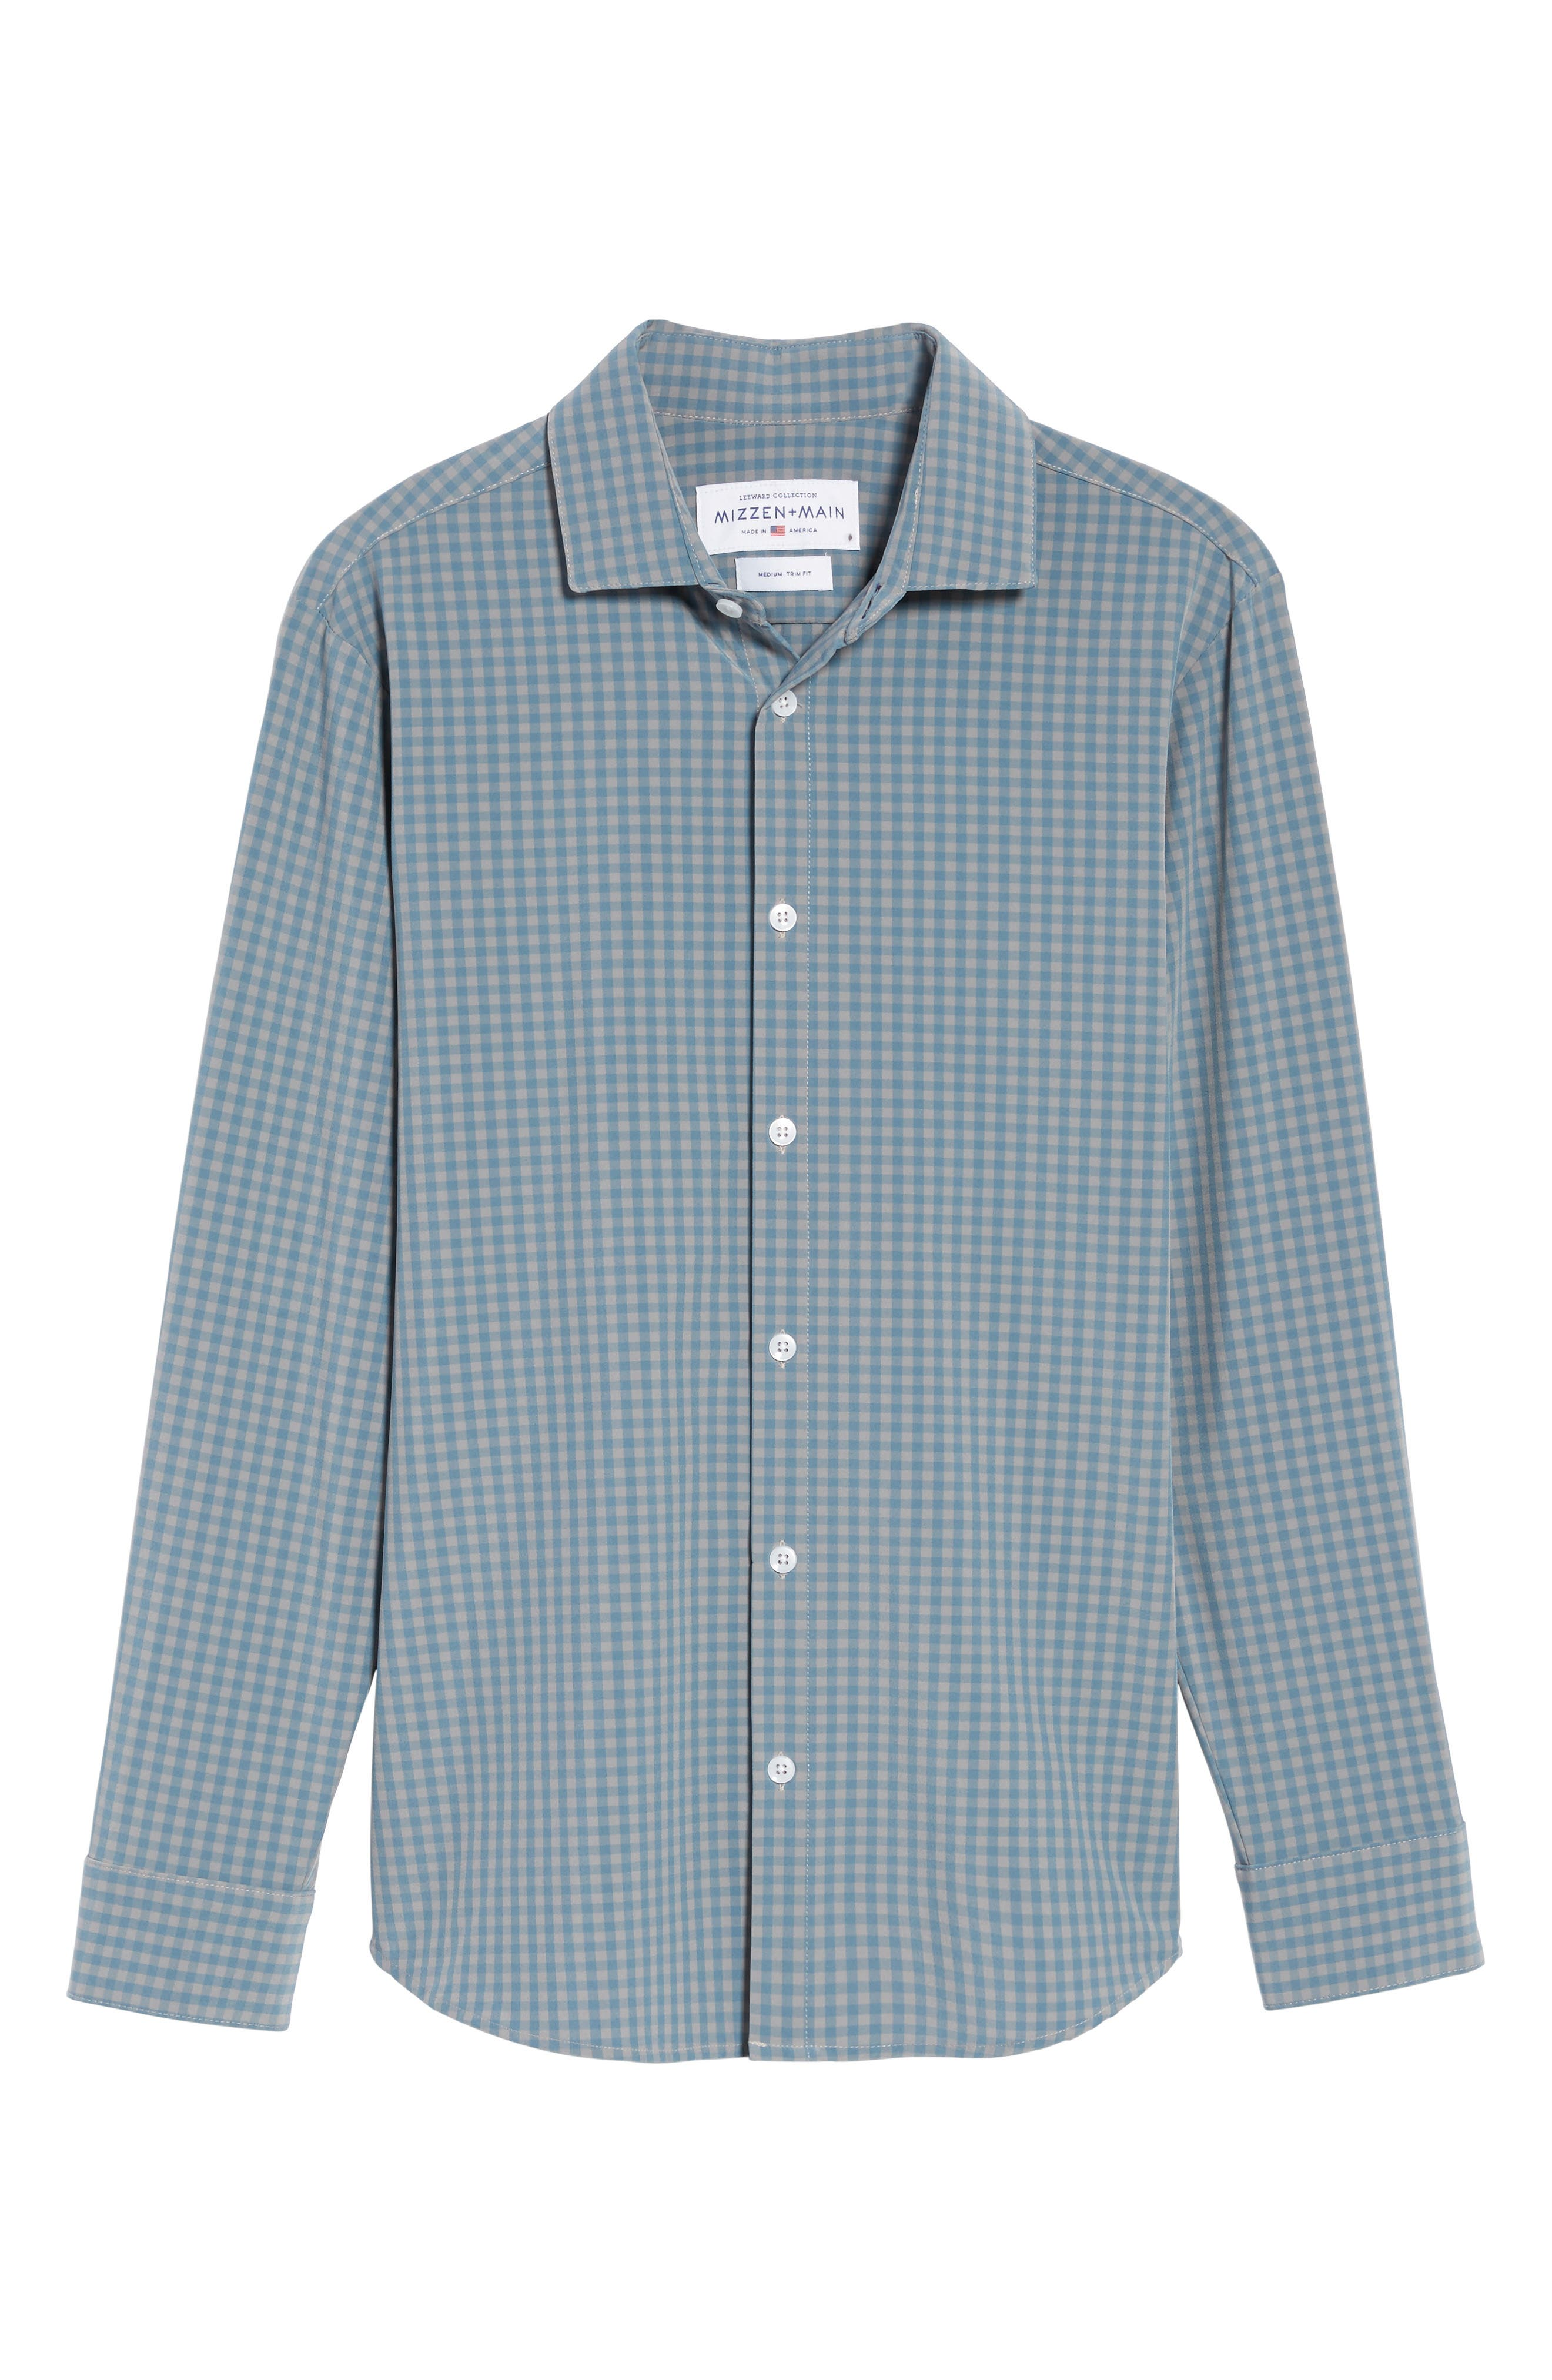 Knox Blue Smoke & Grey Gingham Sport Shirt,                             Alternate thumbnail 6, color,                             Blue